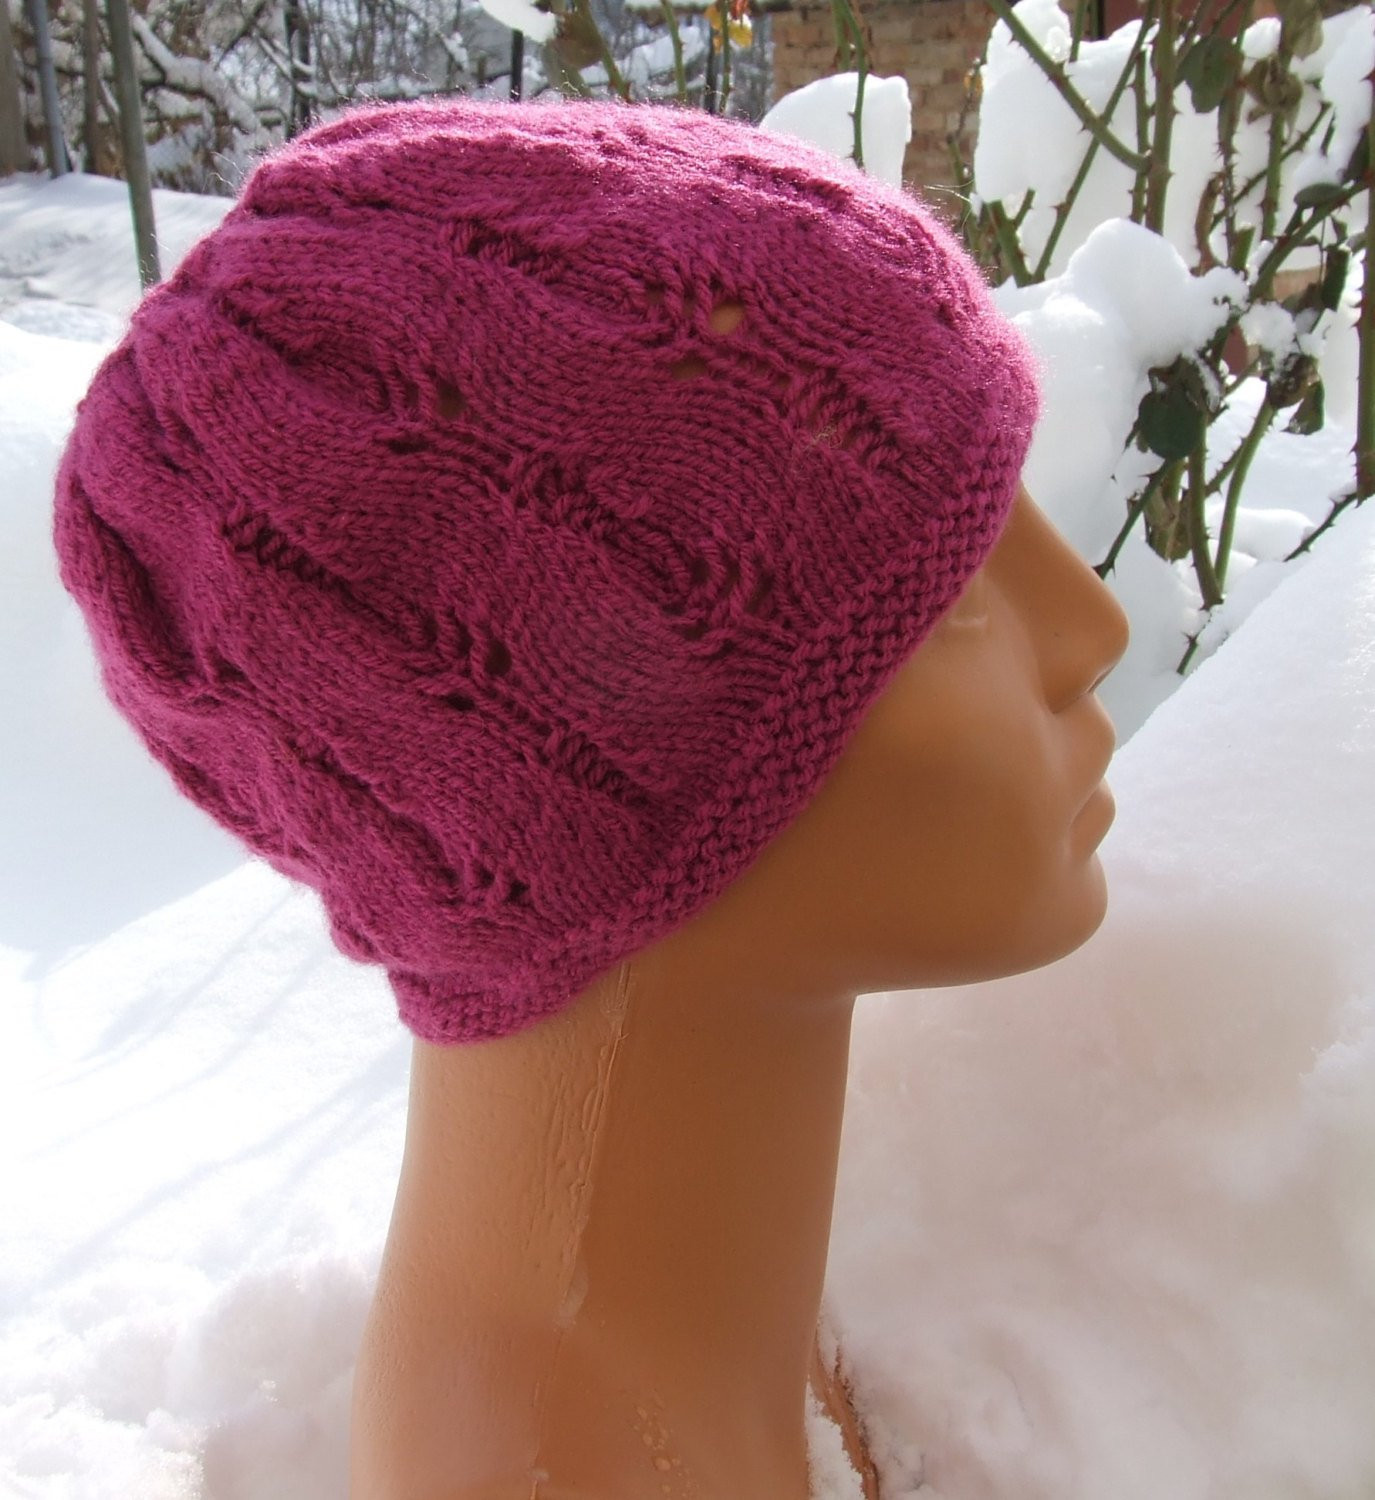 Lovely Knitted Pink Pony Tail Beanie Messy Bun Hat top by Wooliebits Messy Bun Beanie Knit Pattern Of Delightful 48 Pics Messy Bun Beanie Knit Pattern